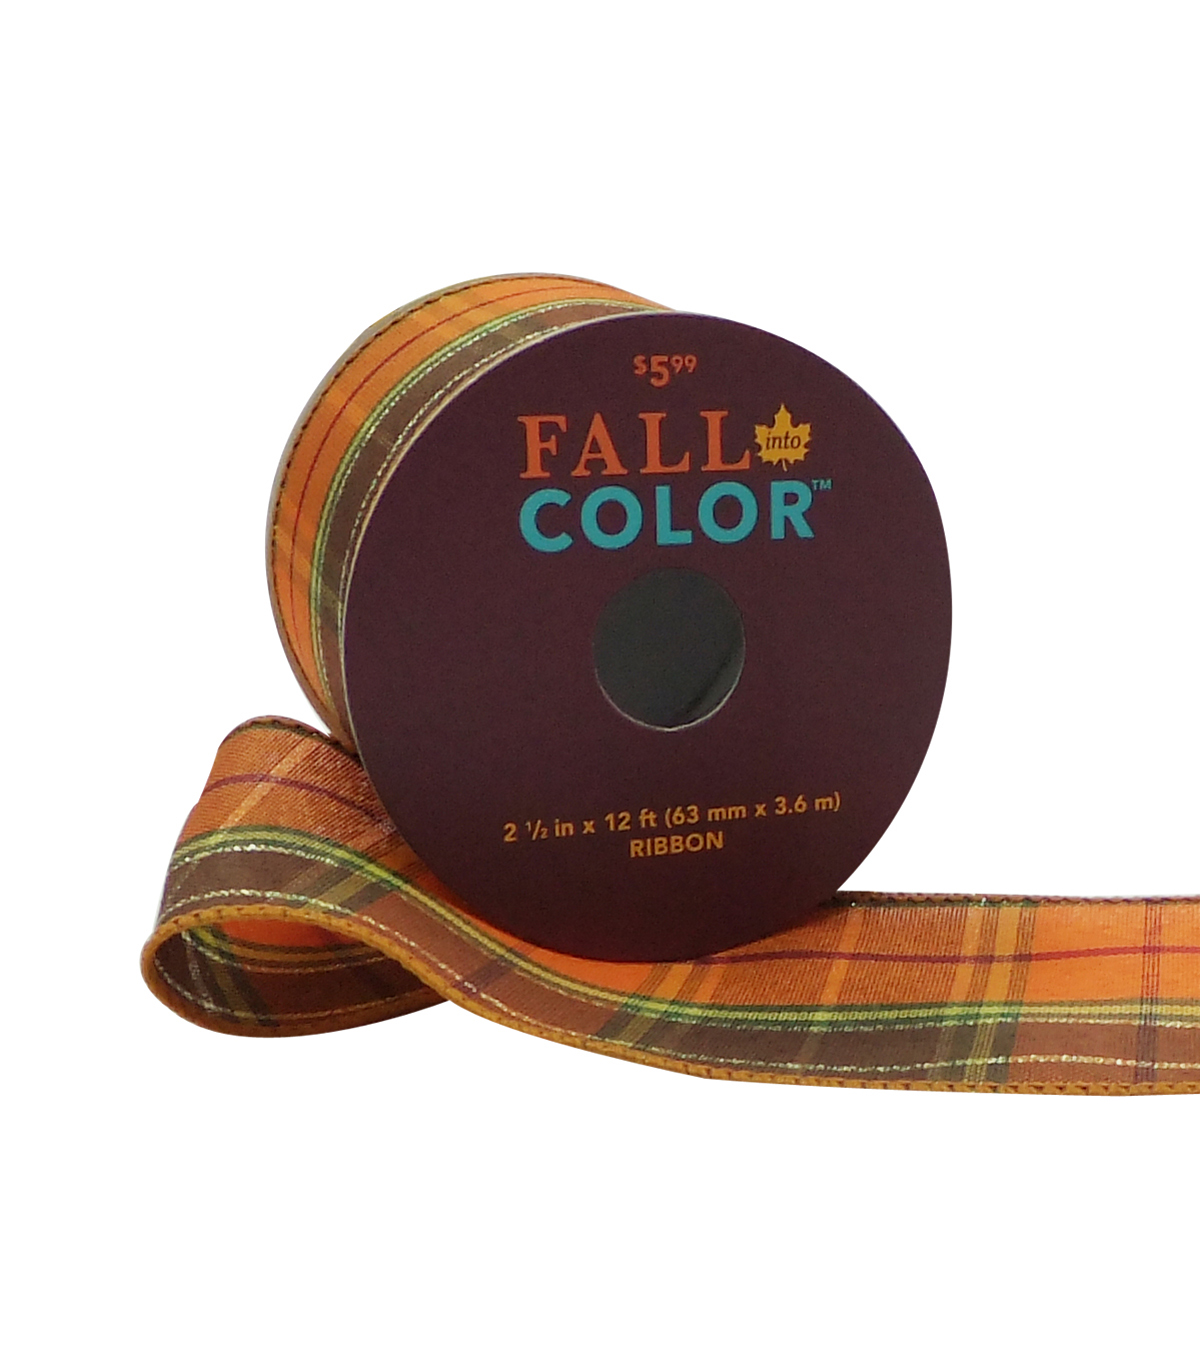 Fall Into Color Ribbon 2.5''x12'-Orange, Brown & Green Plaid